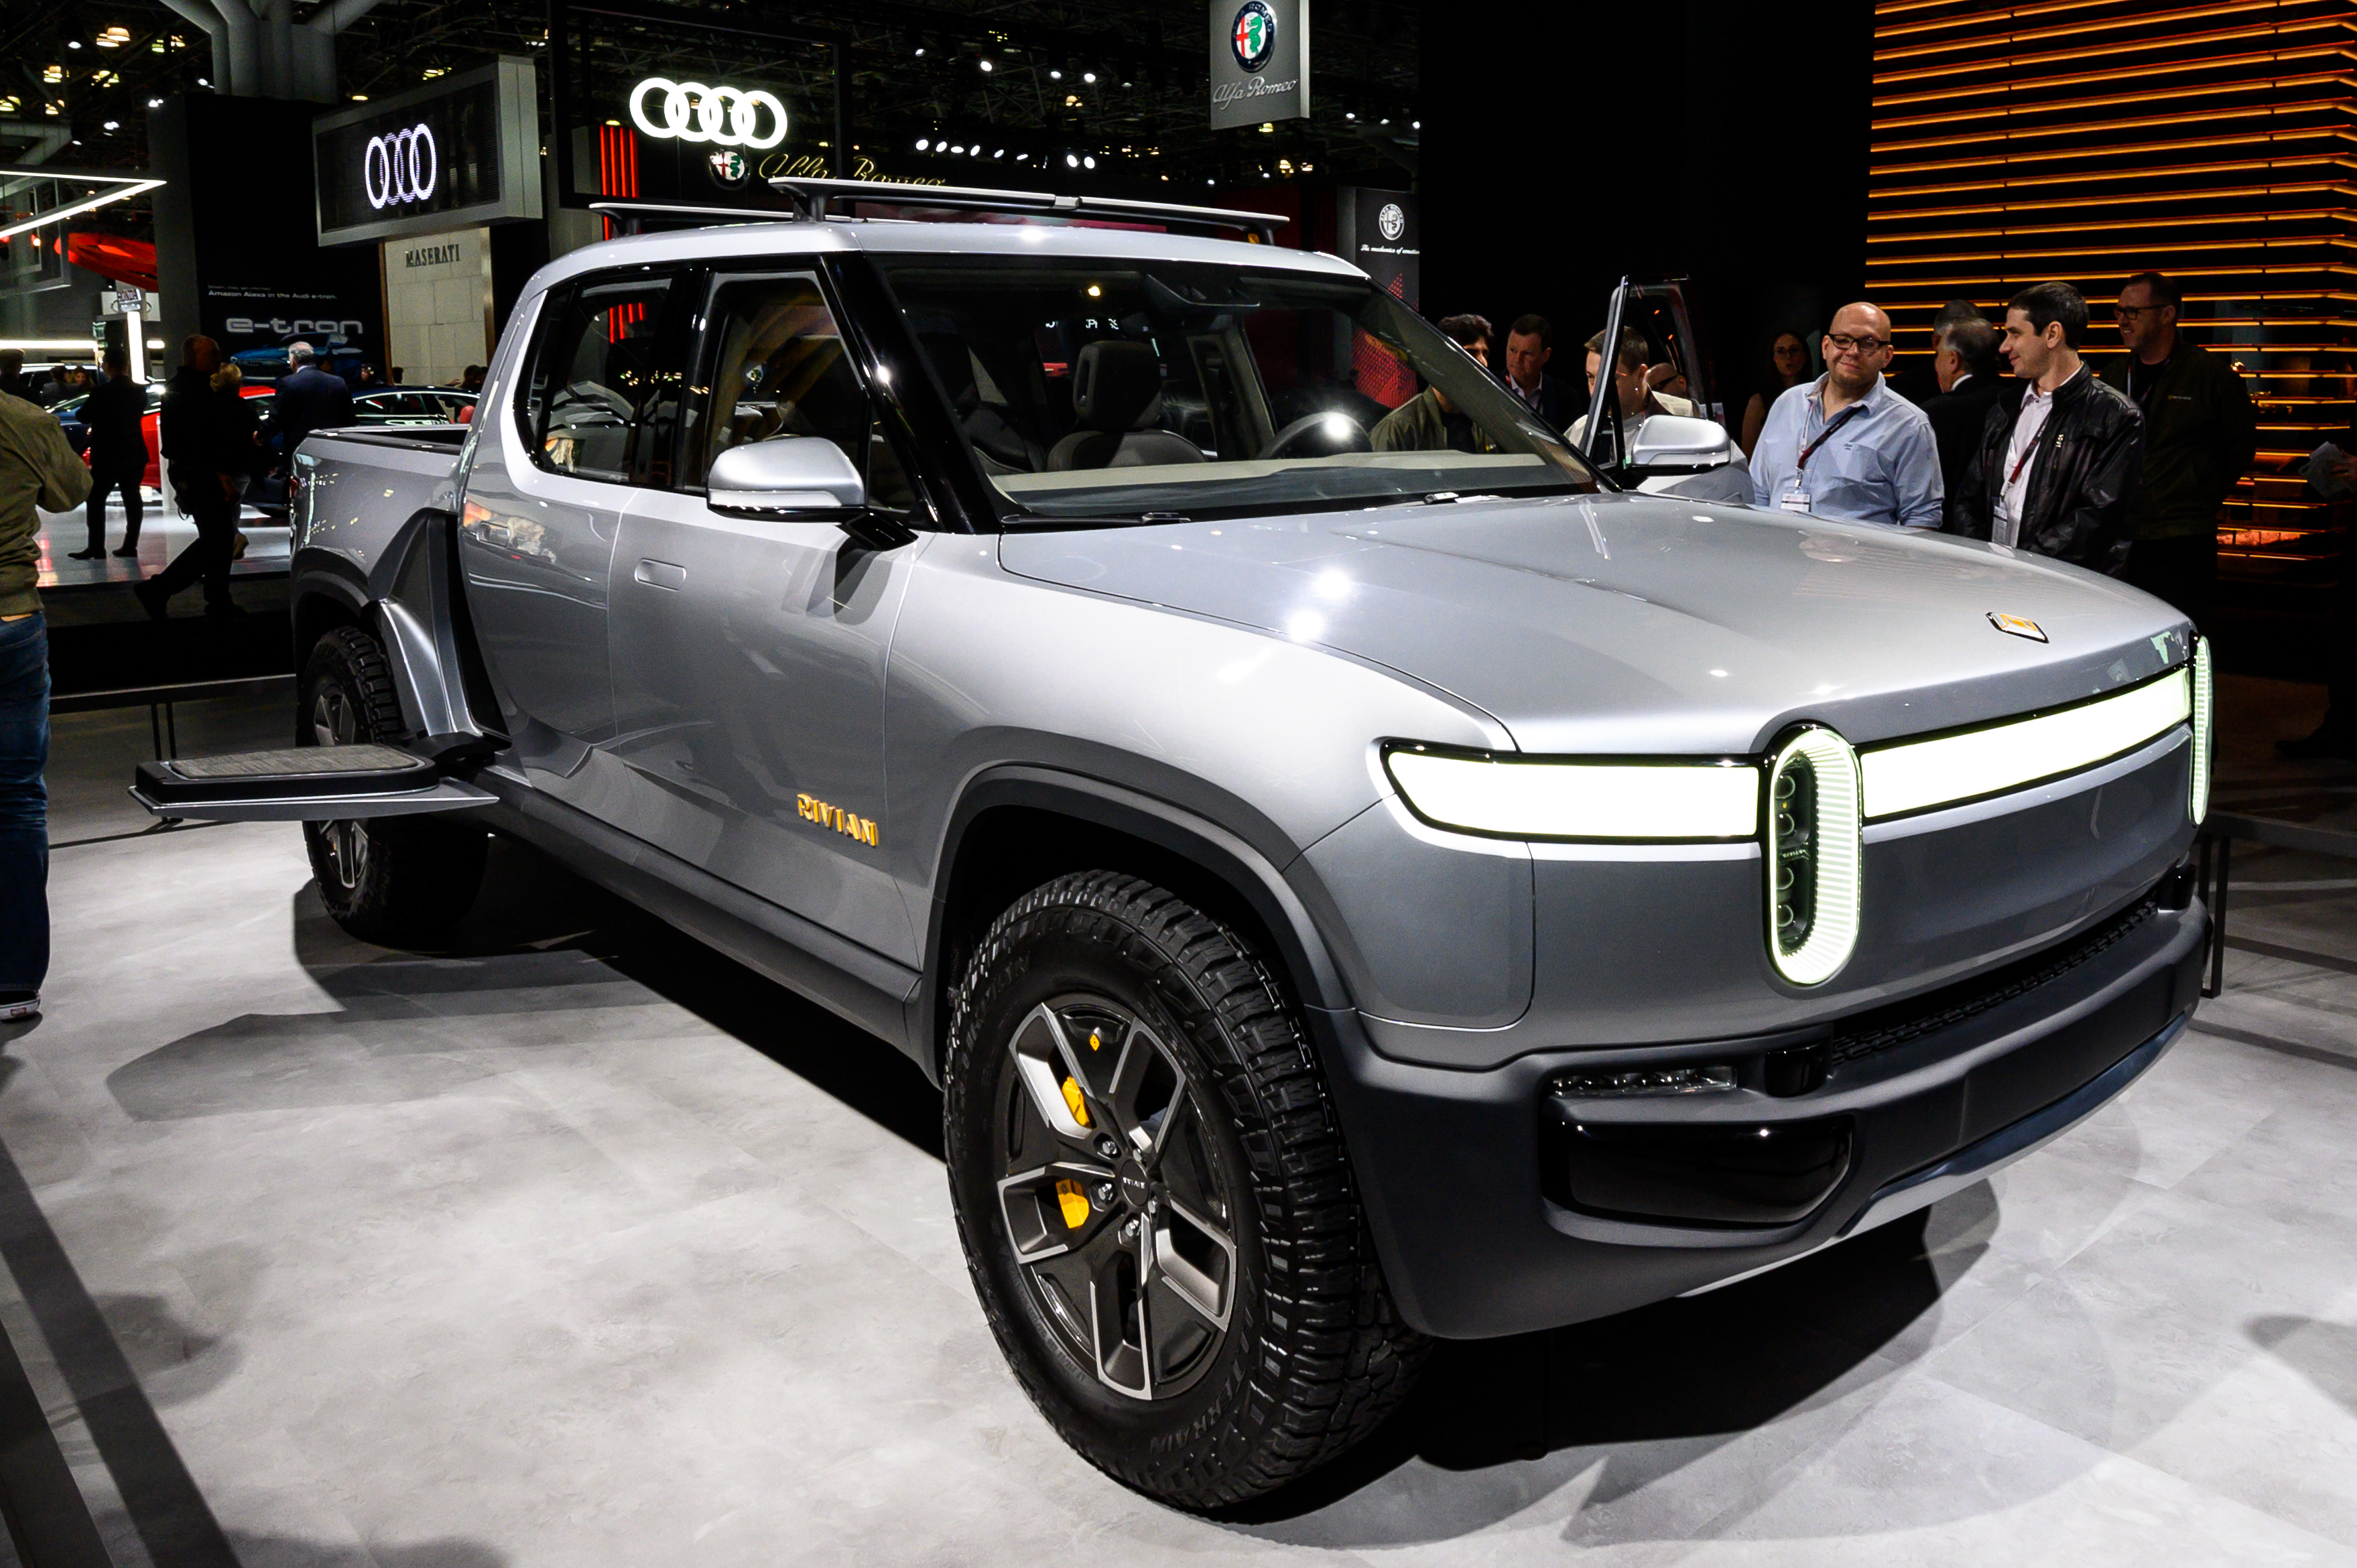 Rivian may build its first international electric vehicle plant in the UK